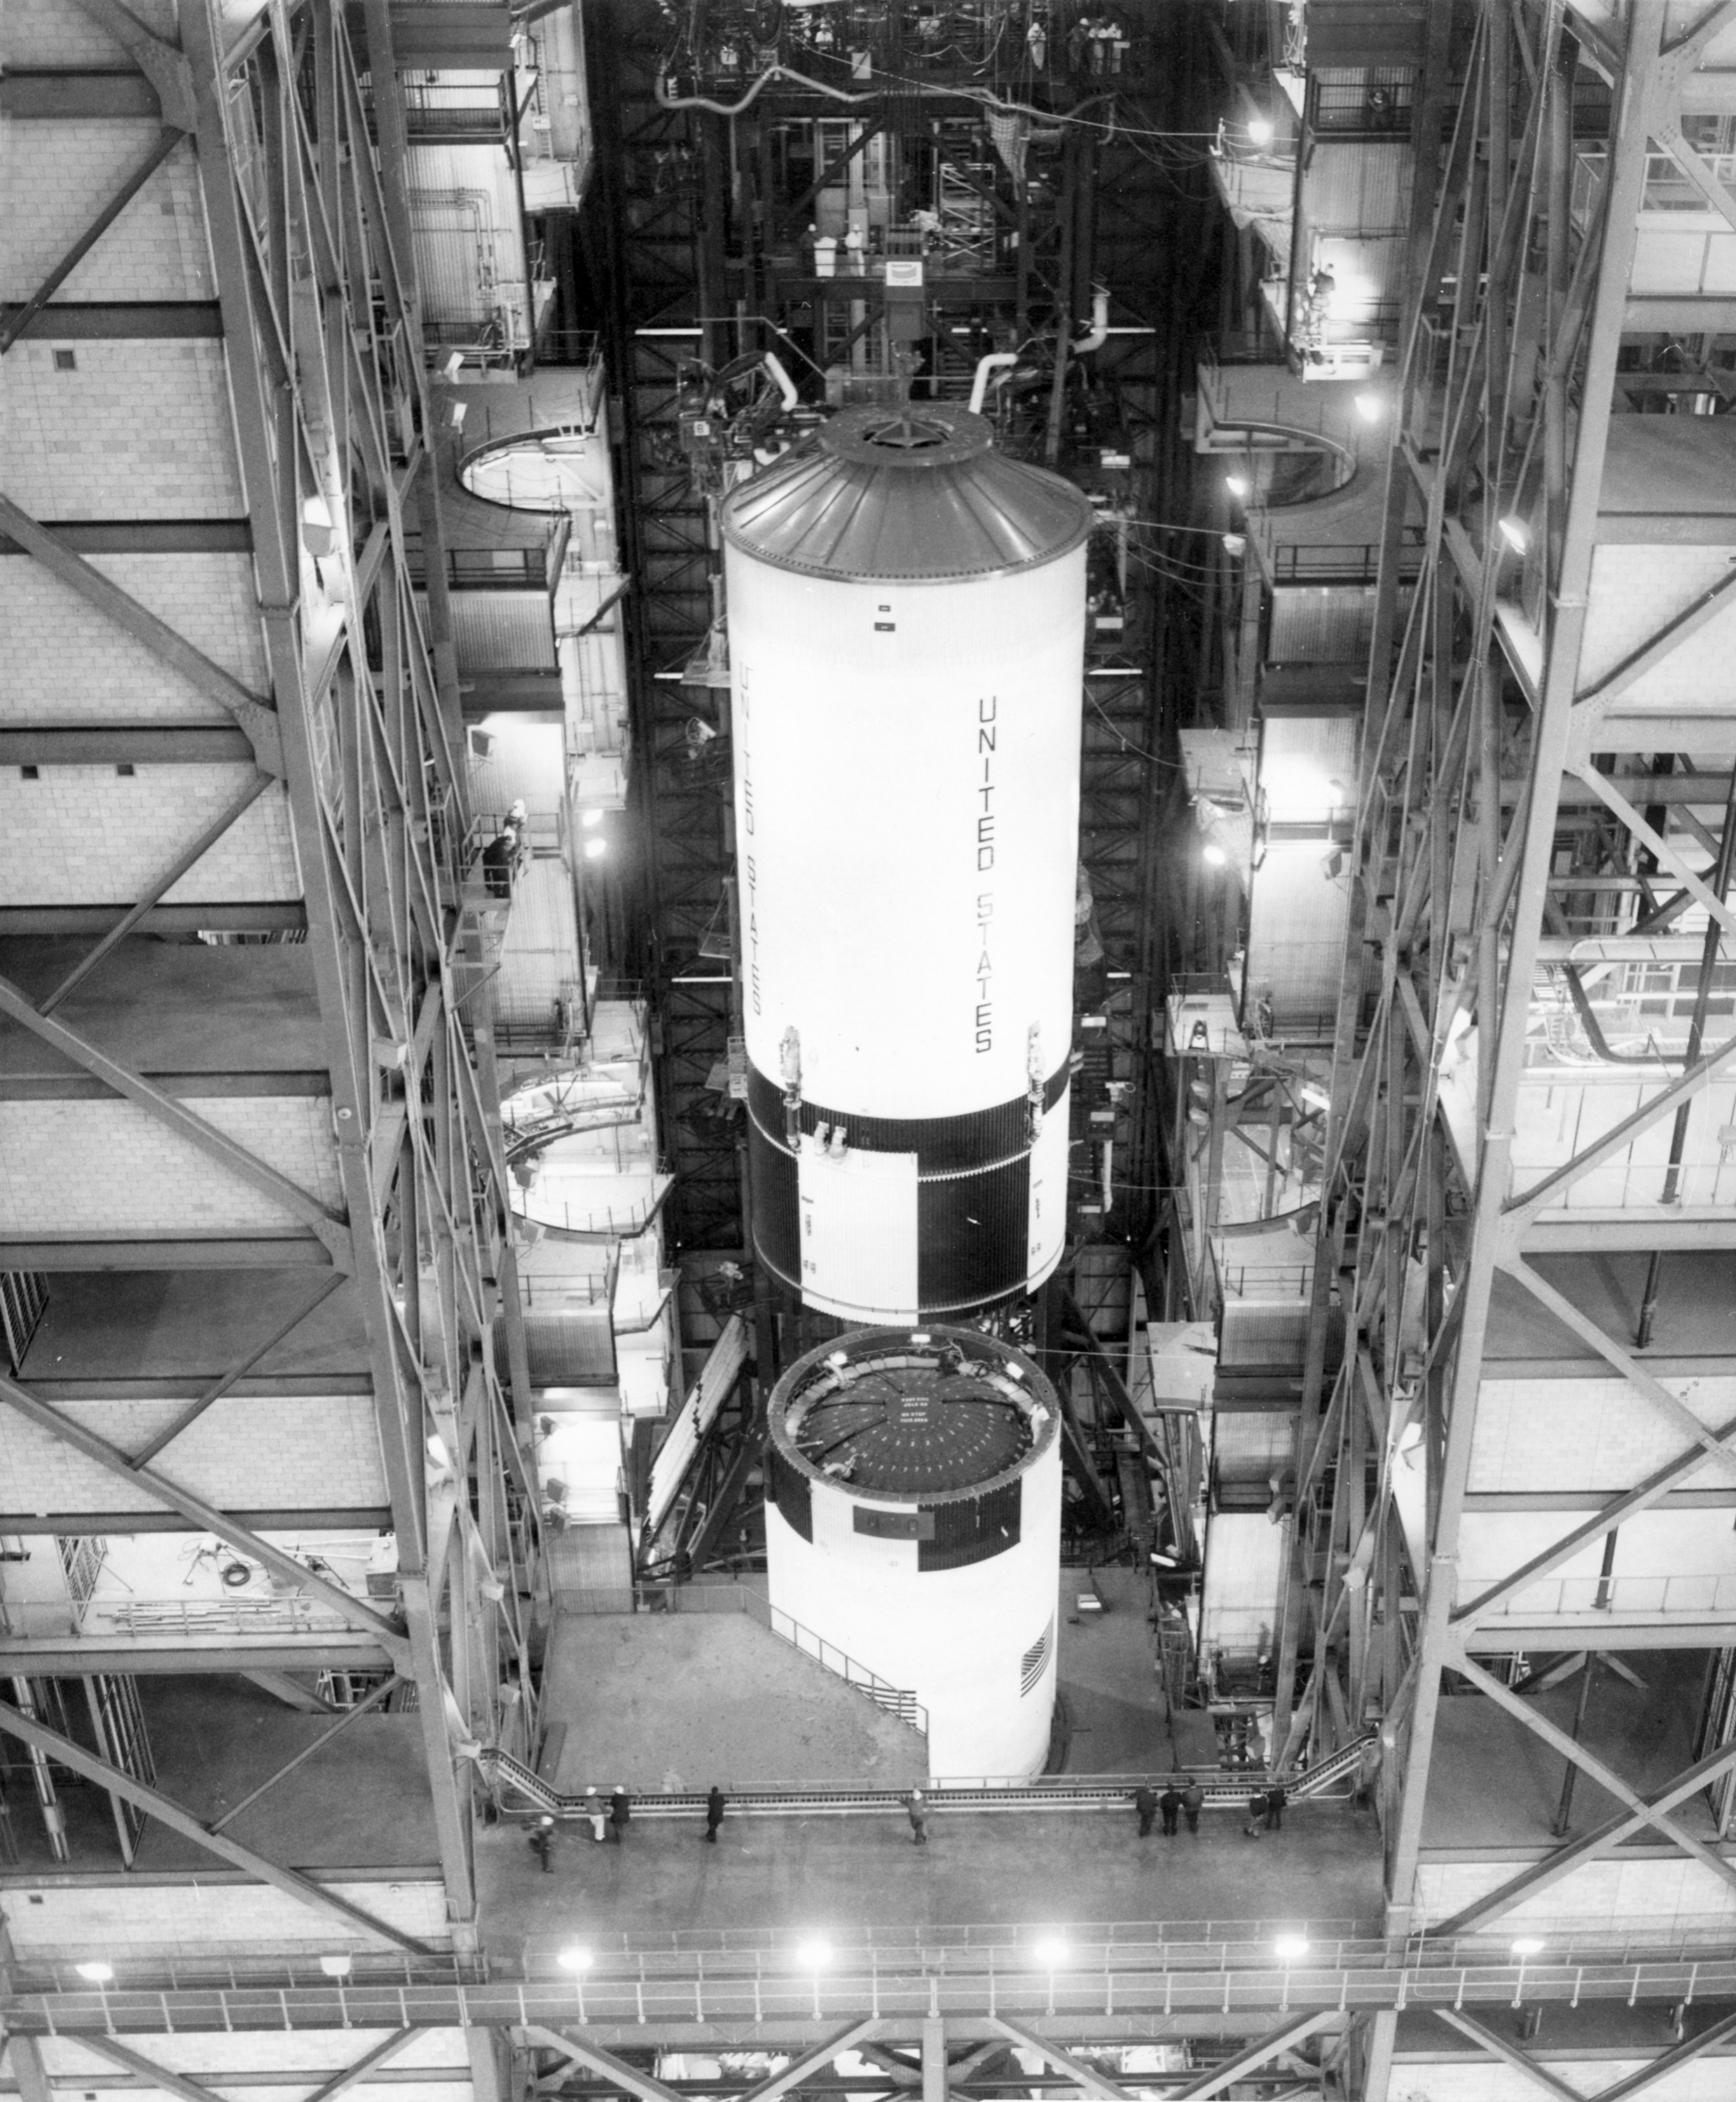 a history of the apollo 11 mission It was 47 years ago, on july 20, 1969, that astronauts neil armstrong and buzz aldrin of the apollo 11 mission landed on the moon items up for auction include astronaut training equipment.